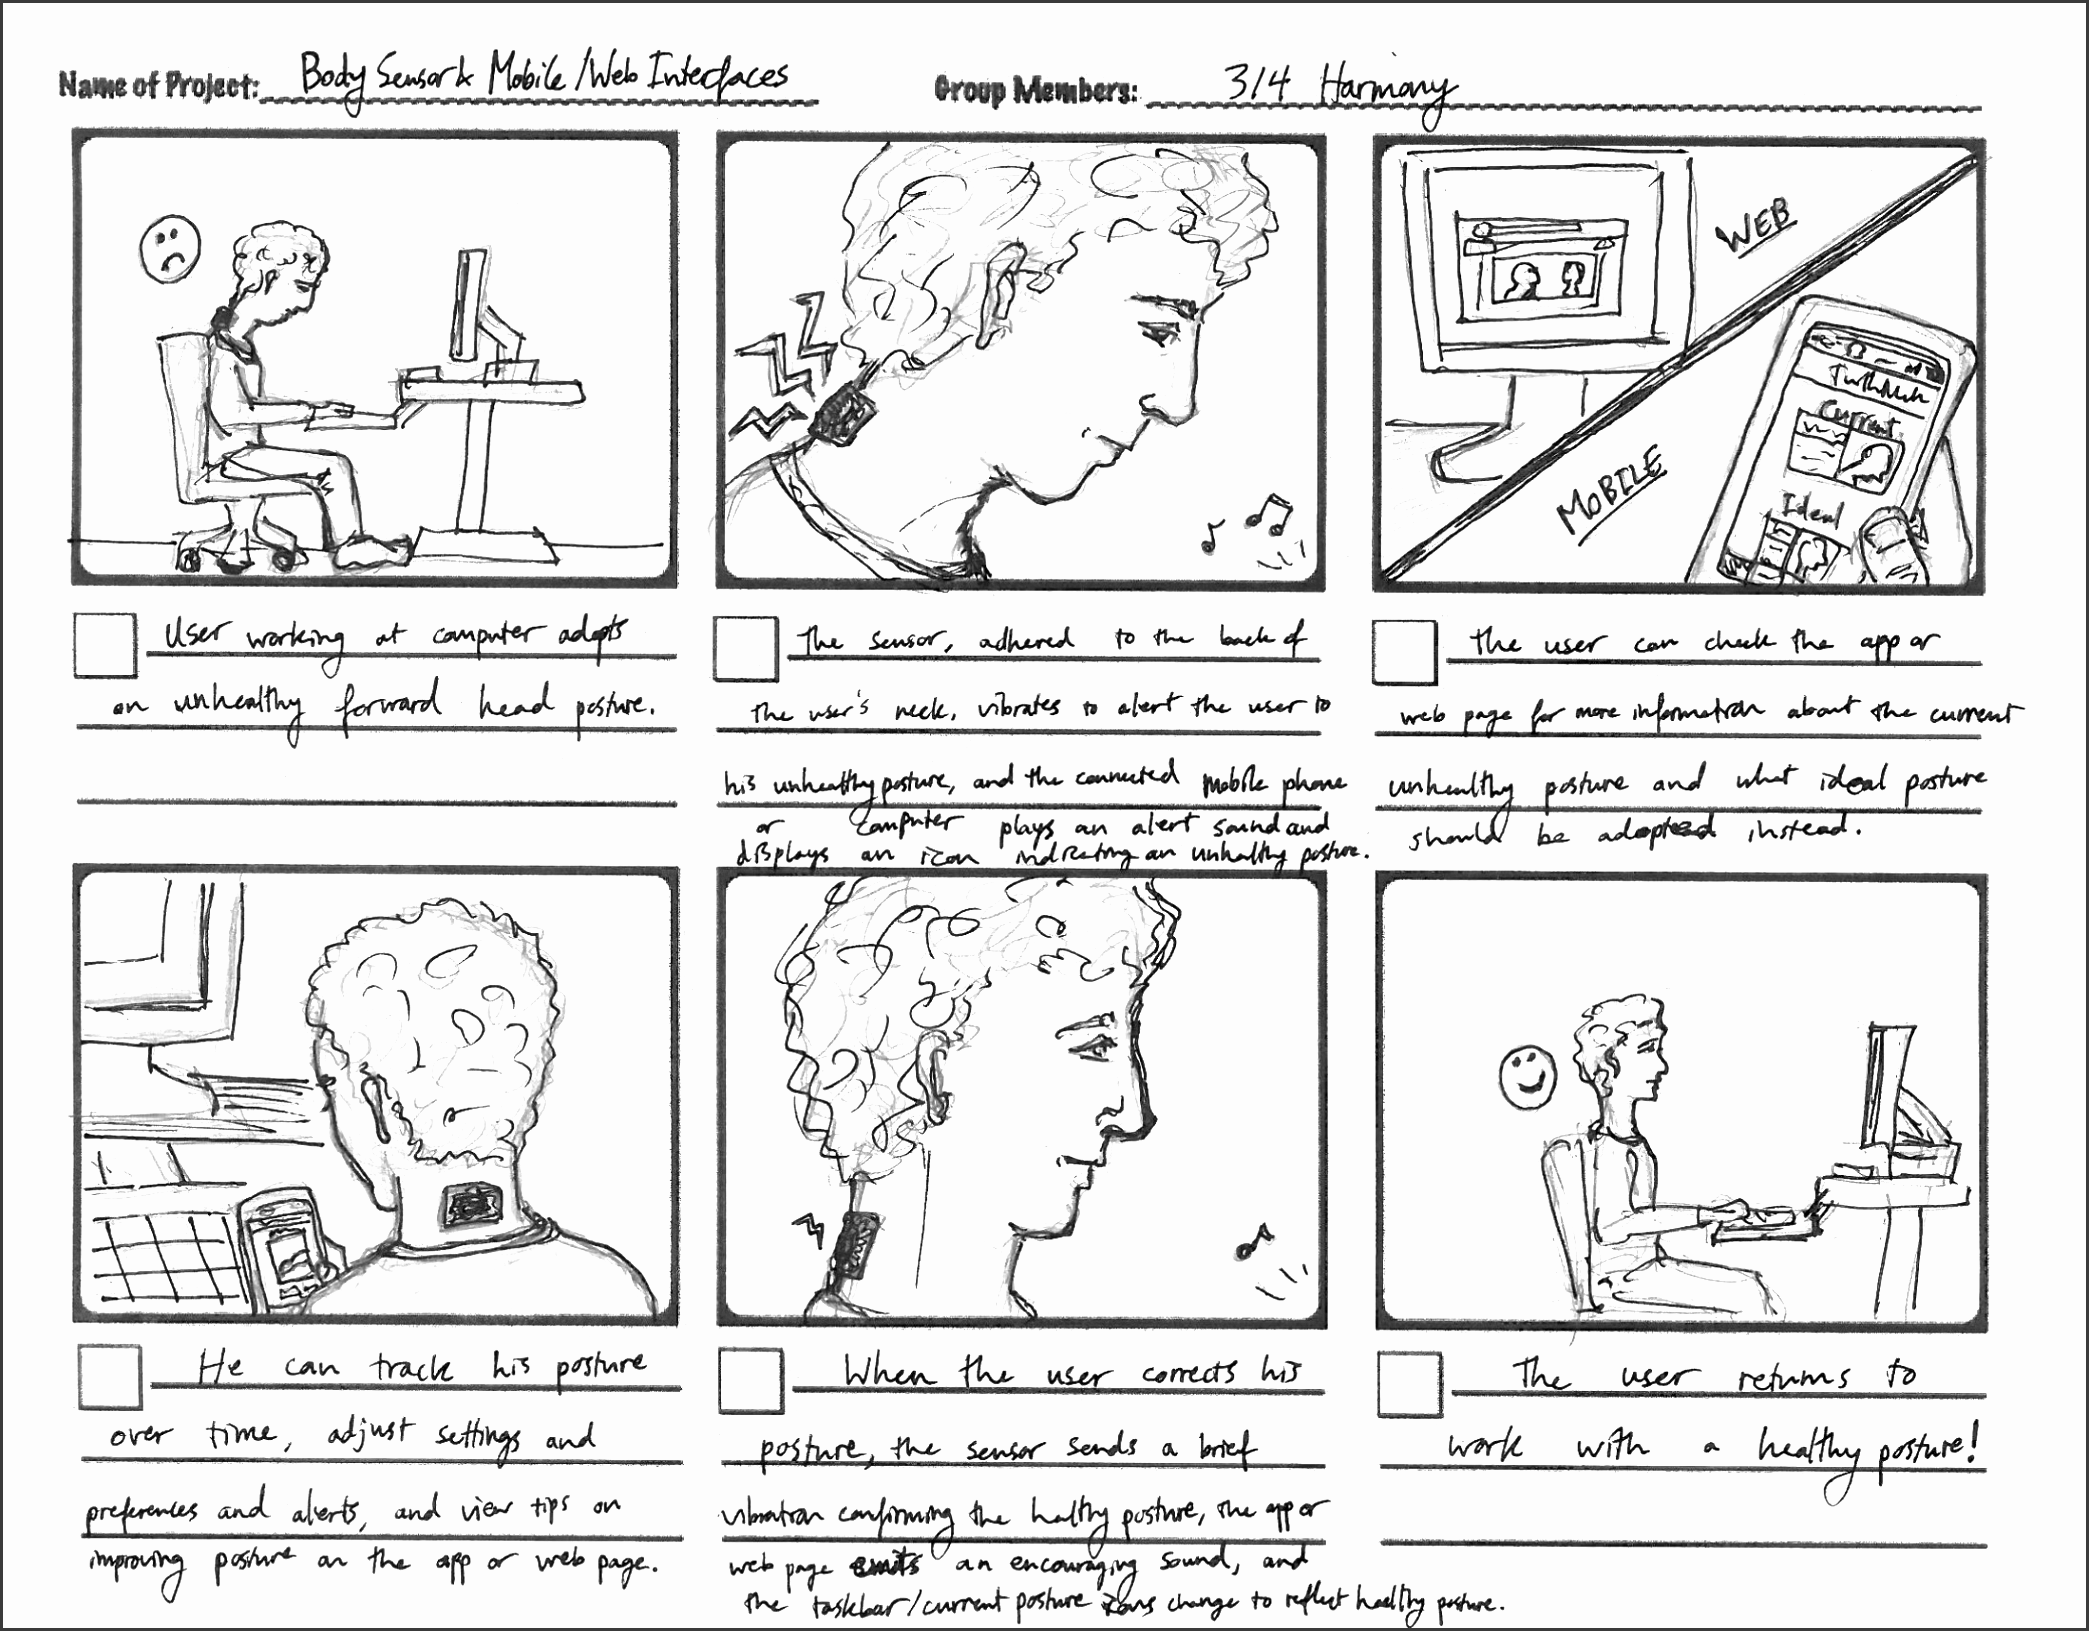 storyboard frames story told in frames image elena marinelli view